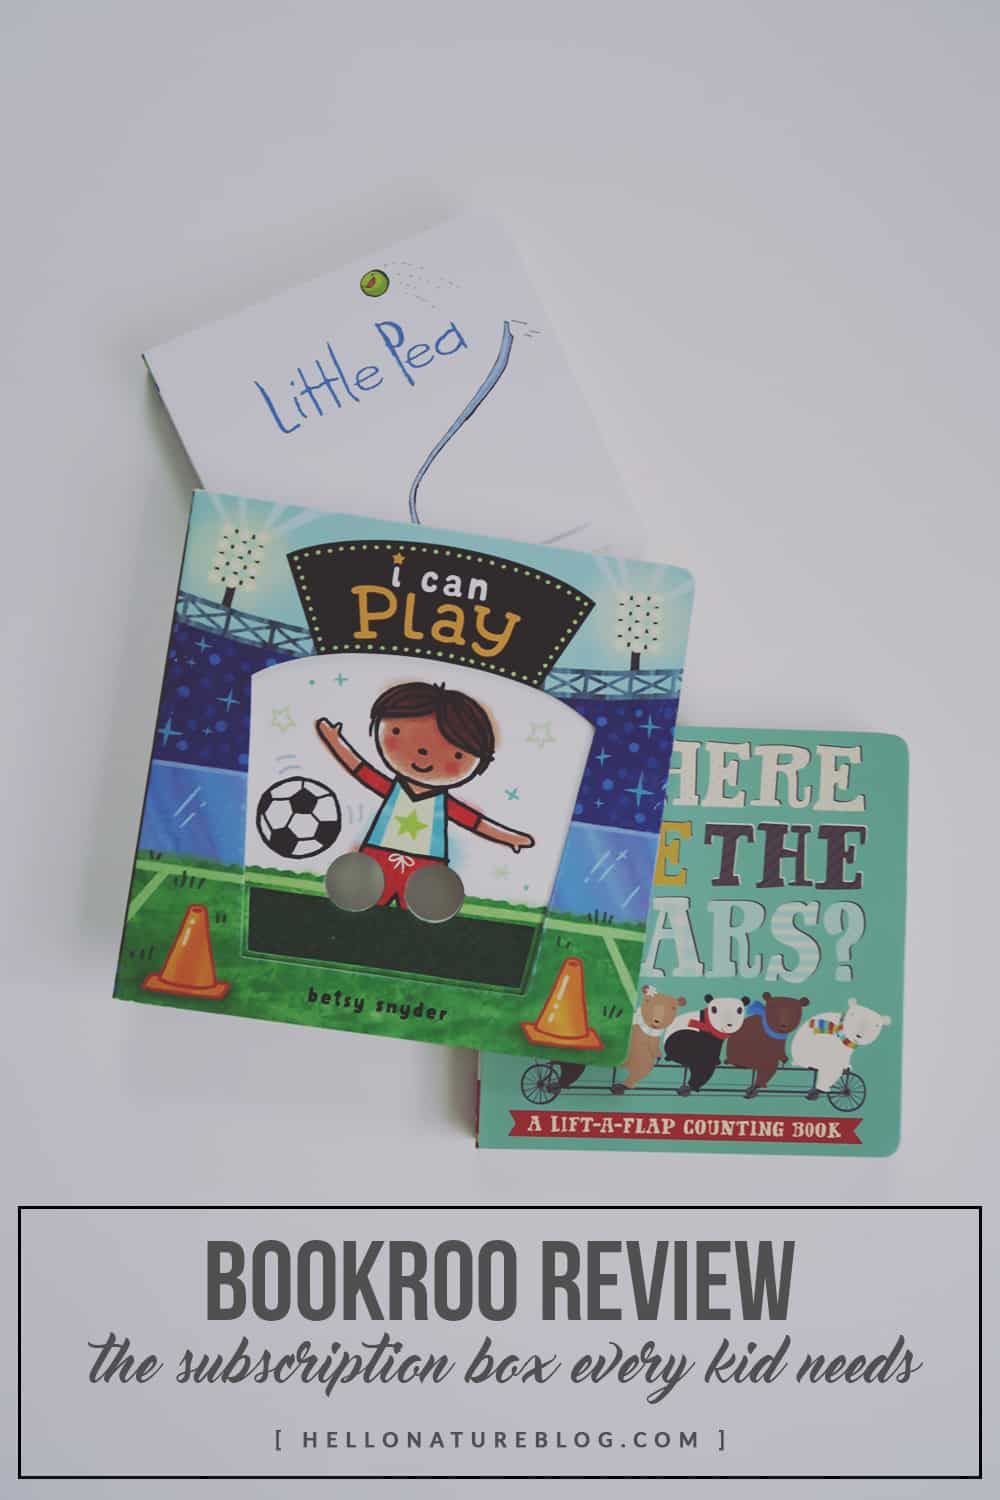 Bookroo: A Subscription Box Every Kid Needs